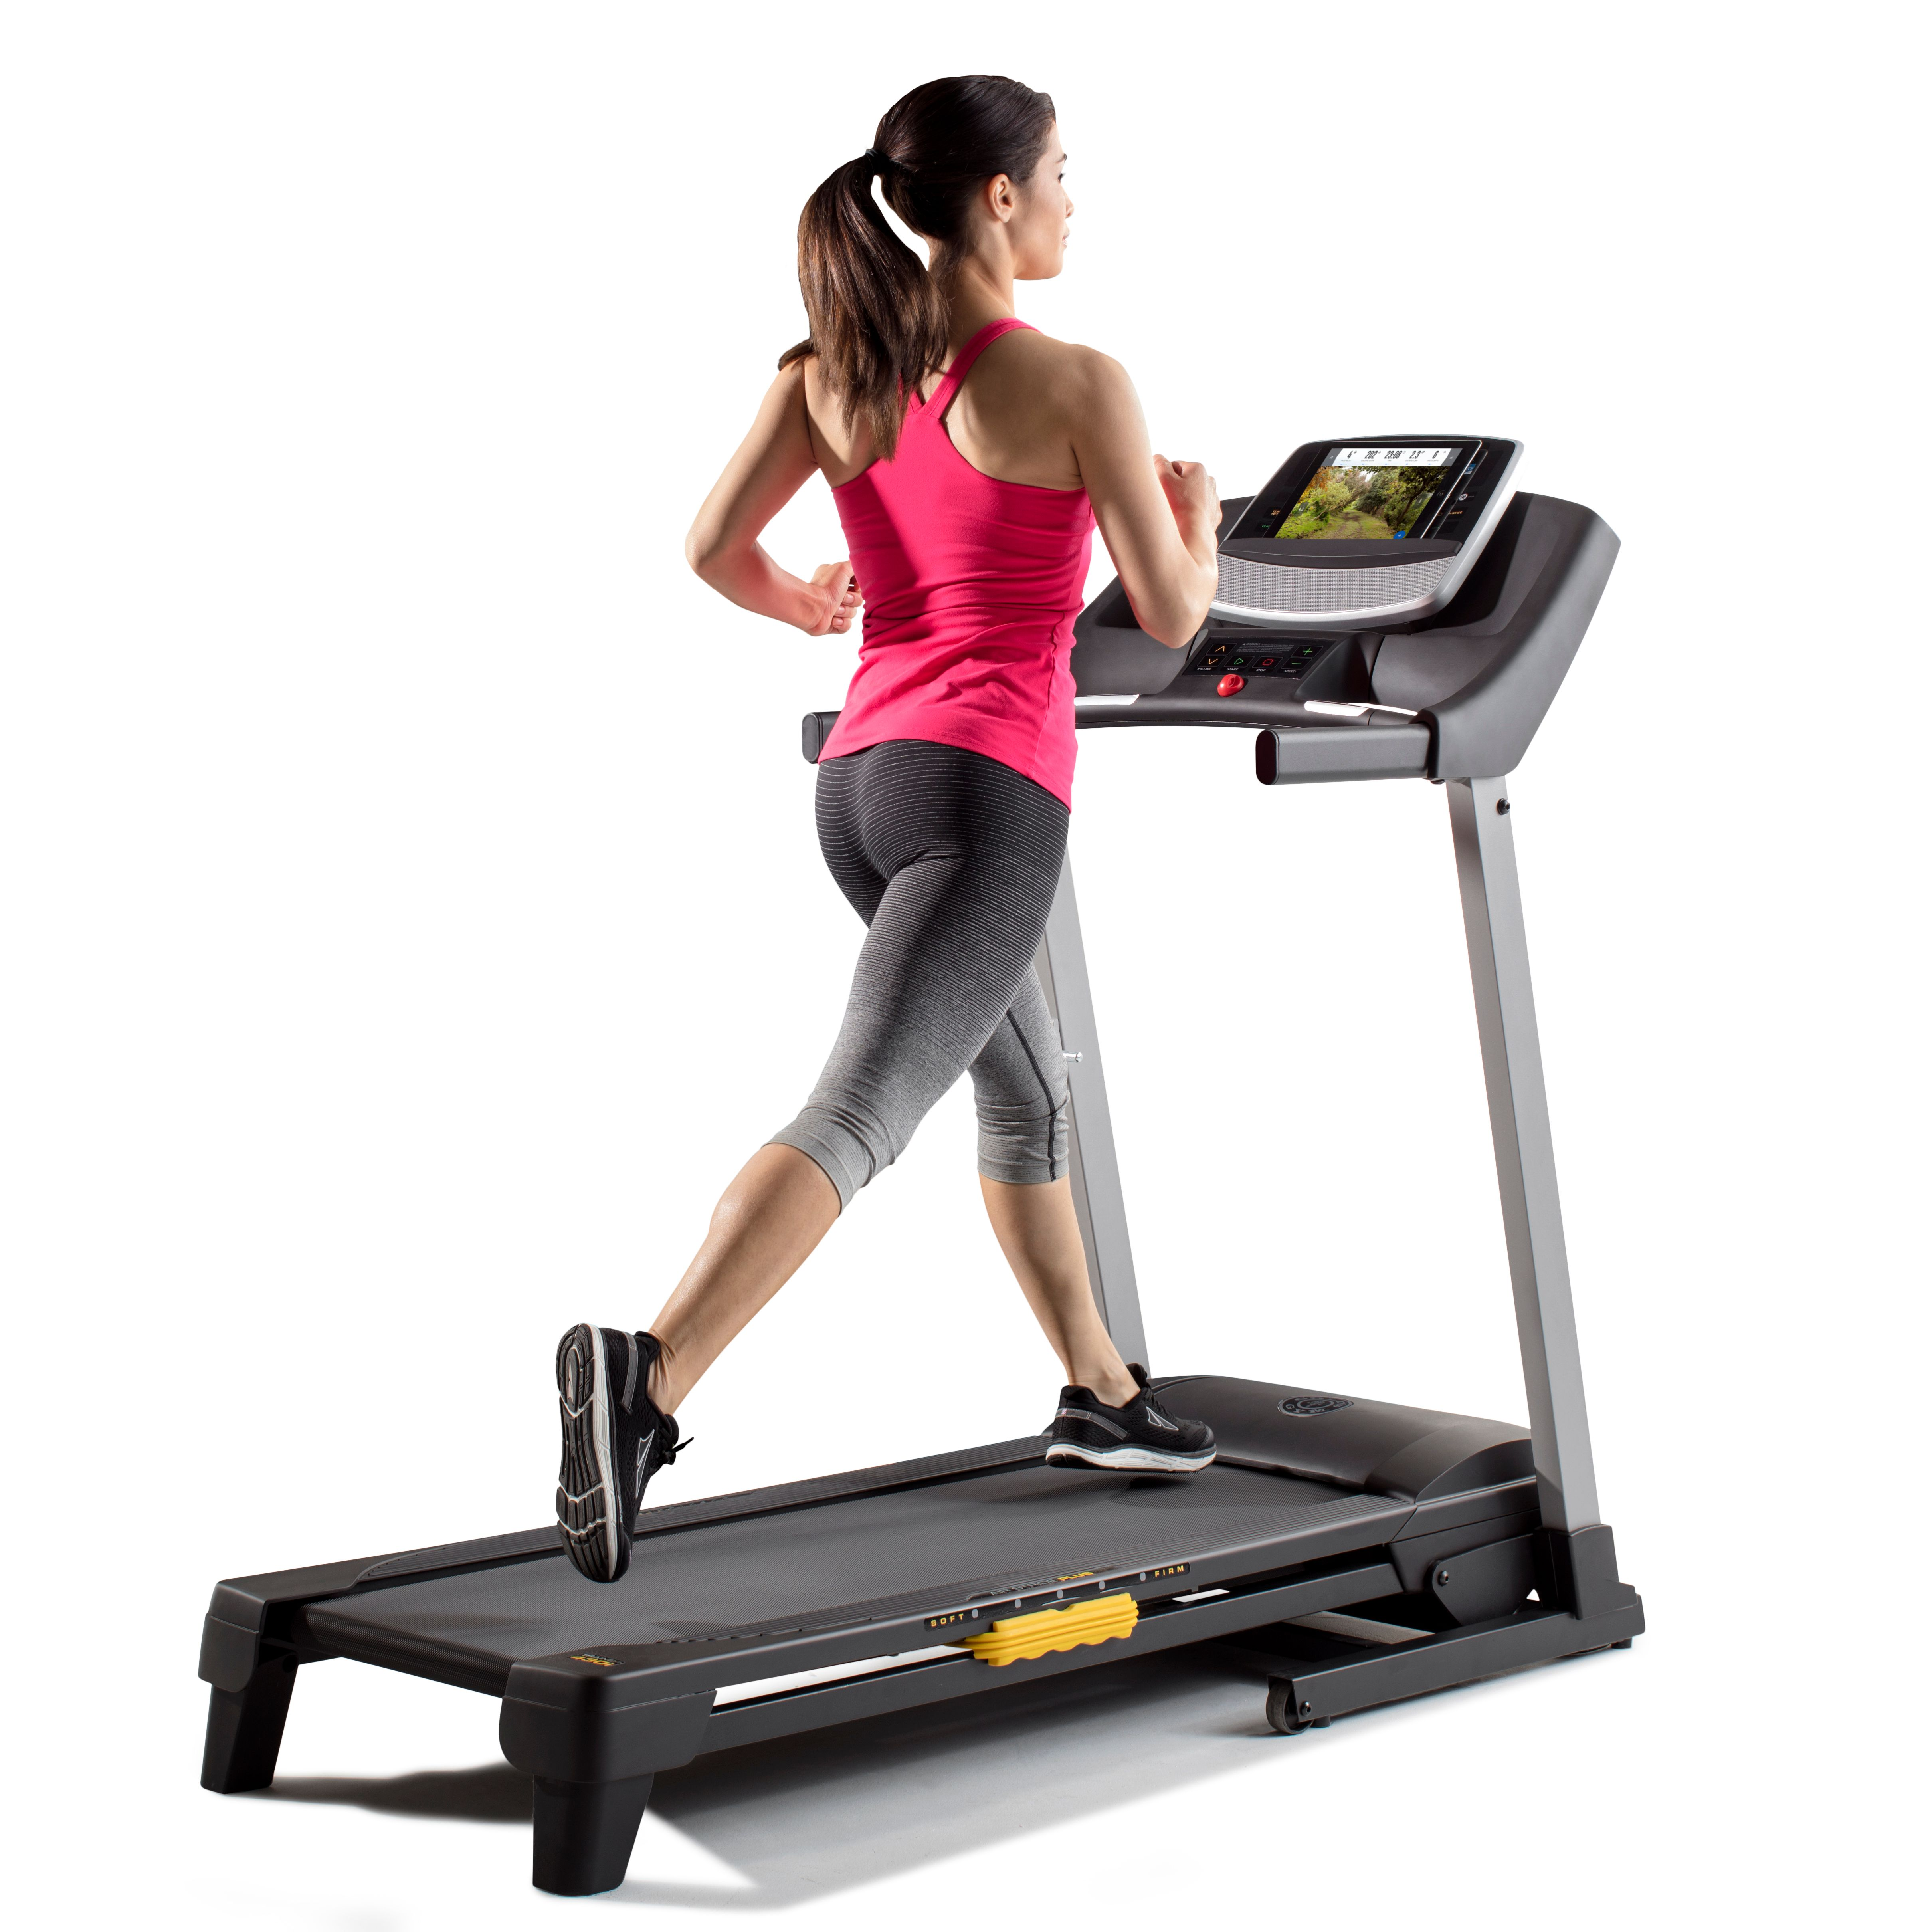 Golds gym trainer 430i treadmill compatible with ifit coach